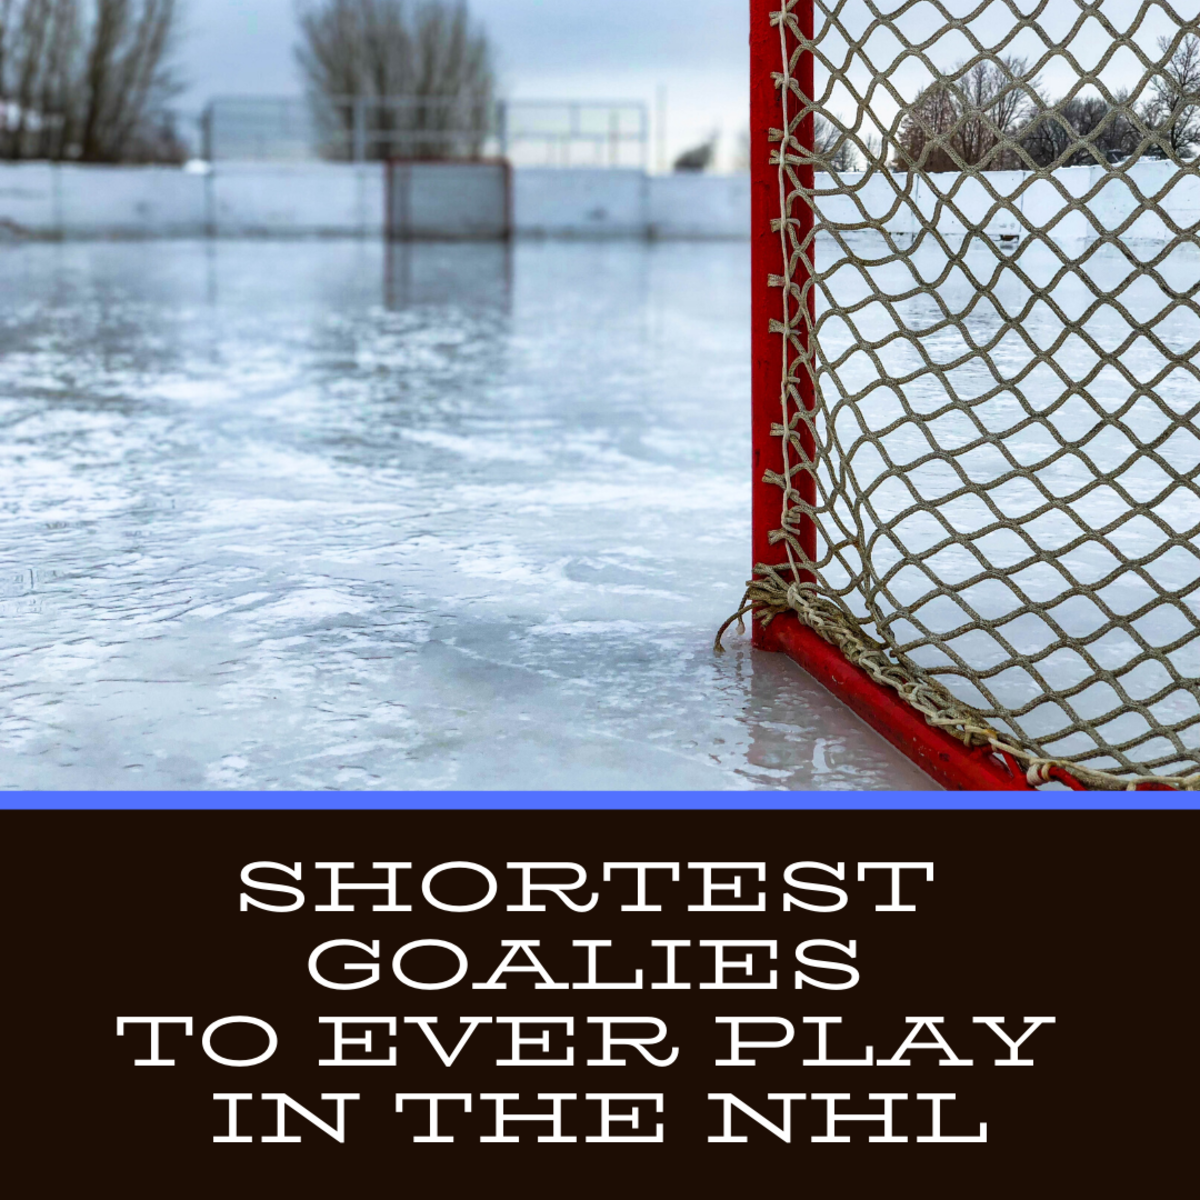 Not all goalies are tall. Read on to see the shortest goalies in history.